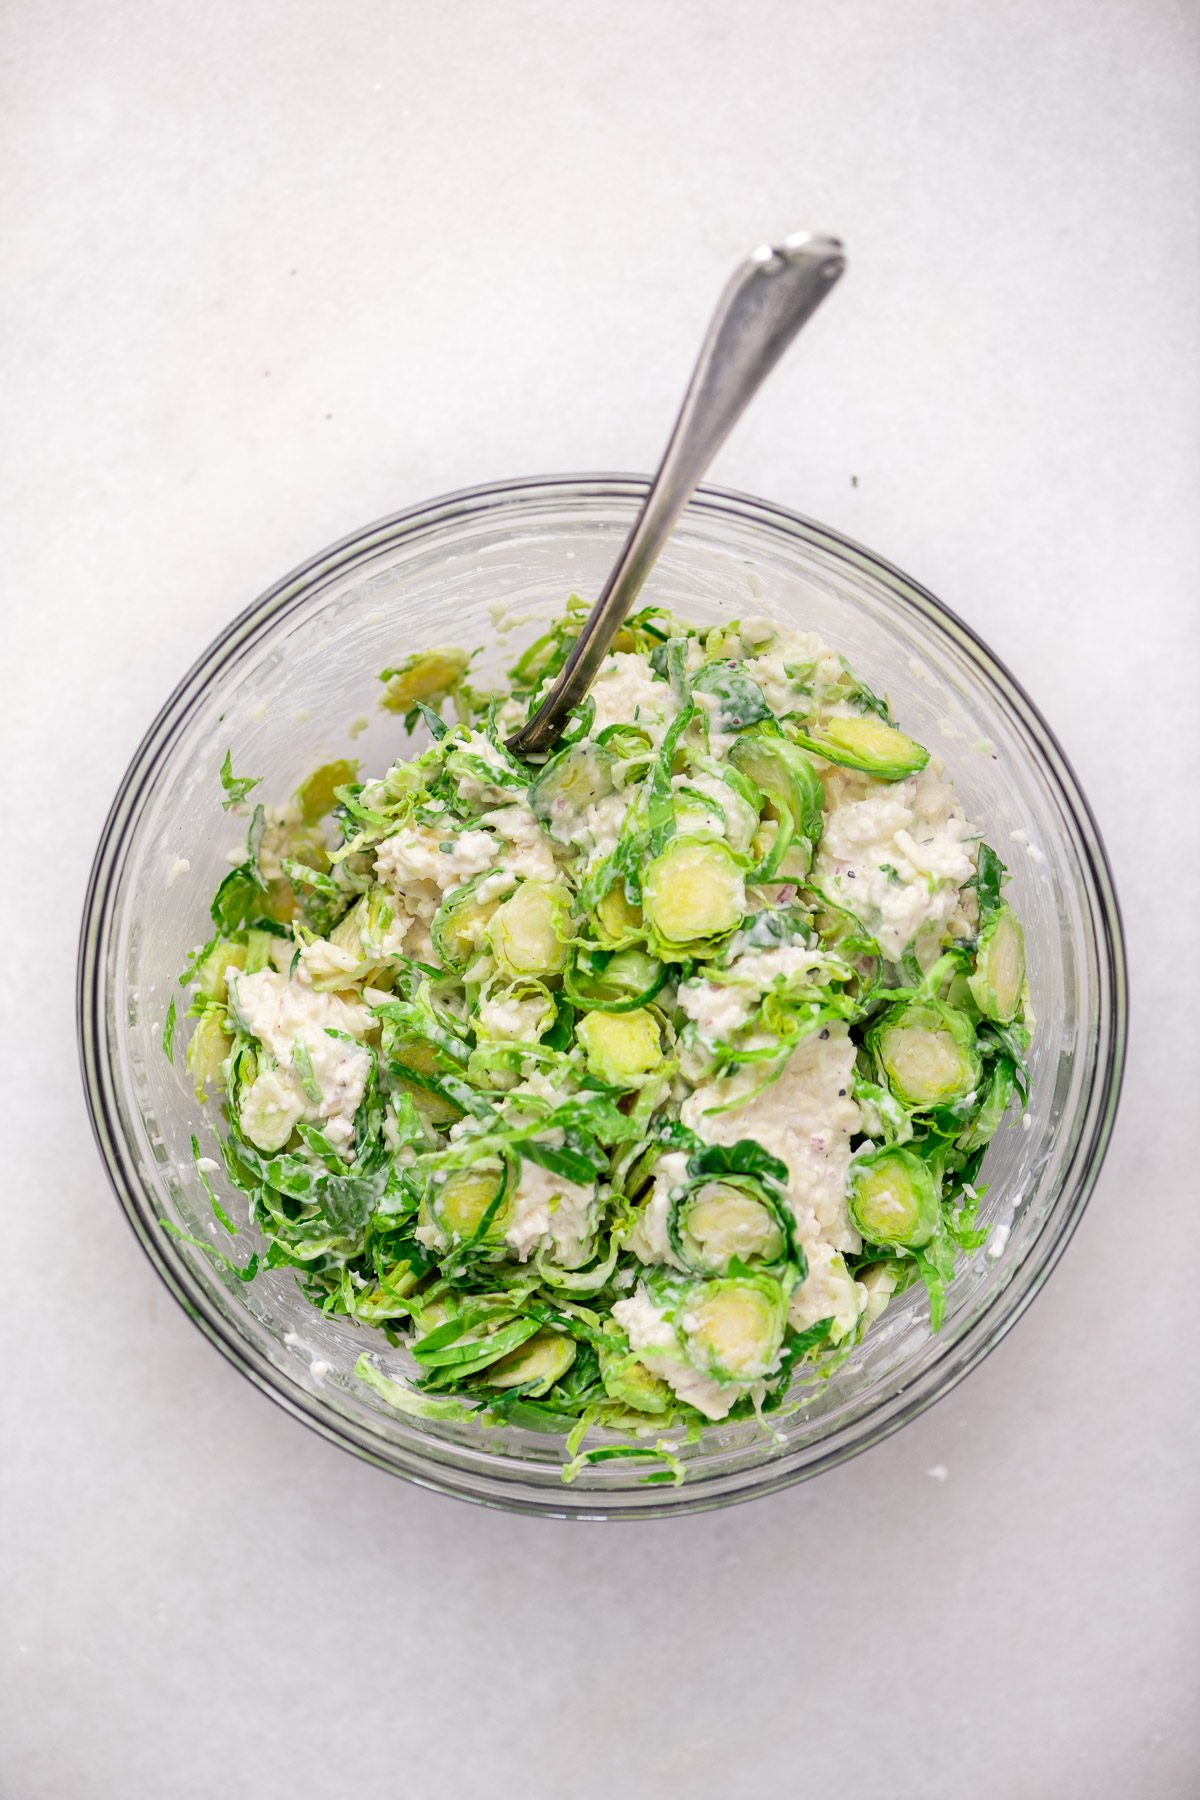 Mixing up a baked Brussels sprout dip